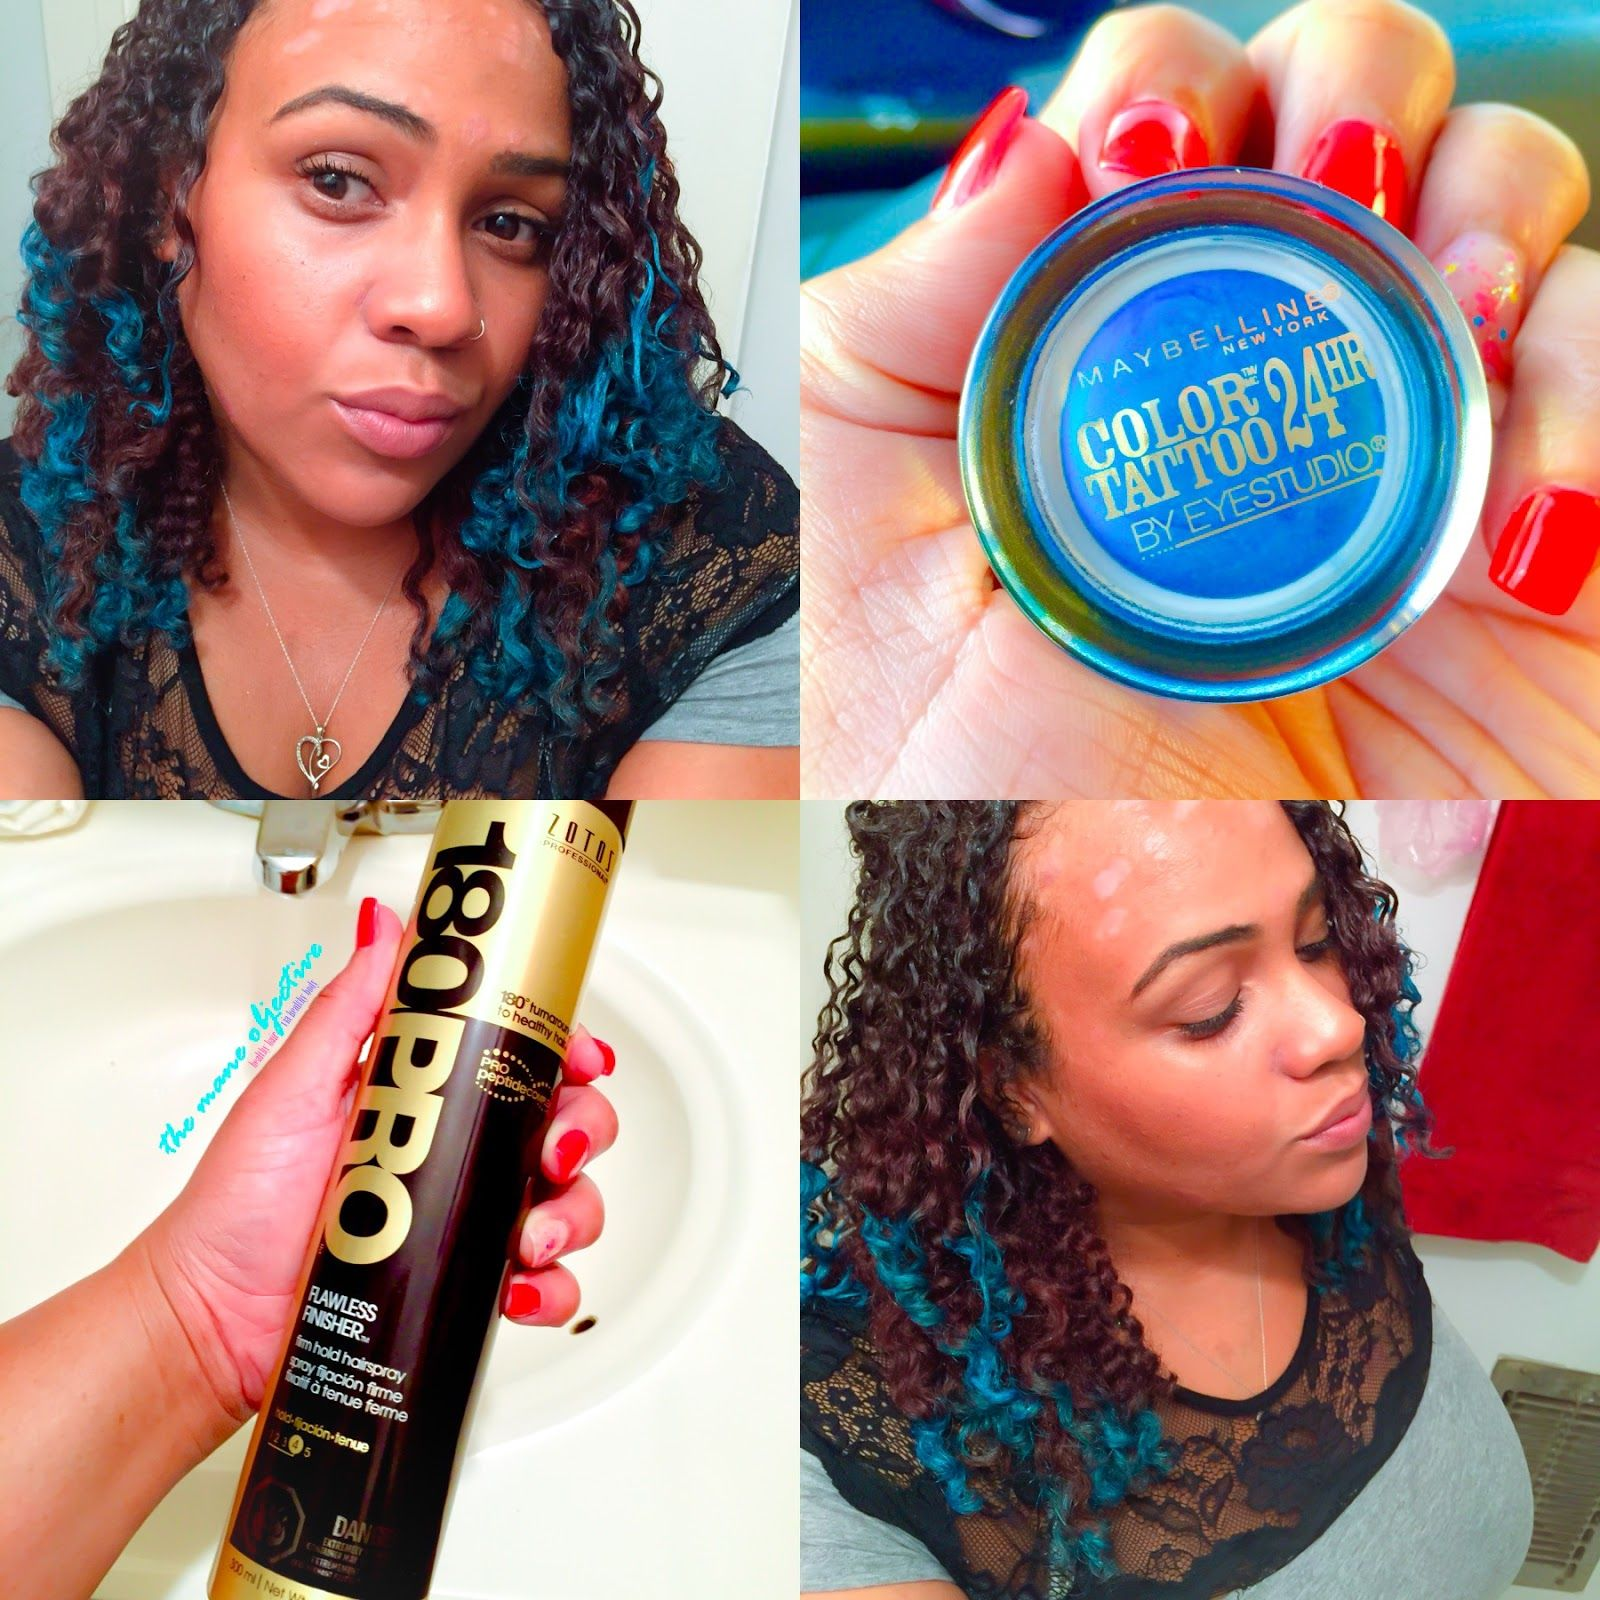 How To Use Eyeshadow As Temporary Hair Color And Save Your Curls